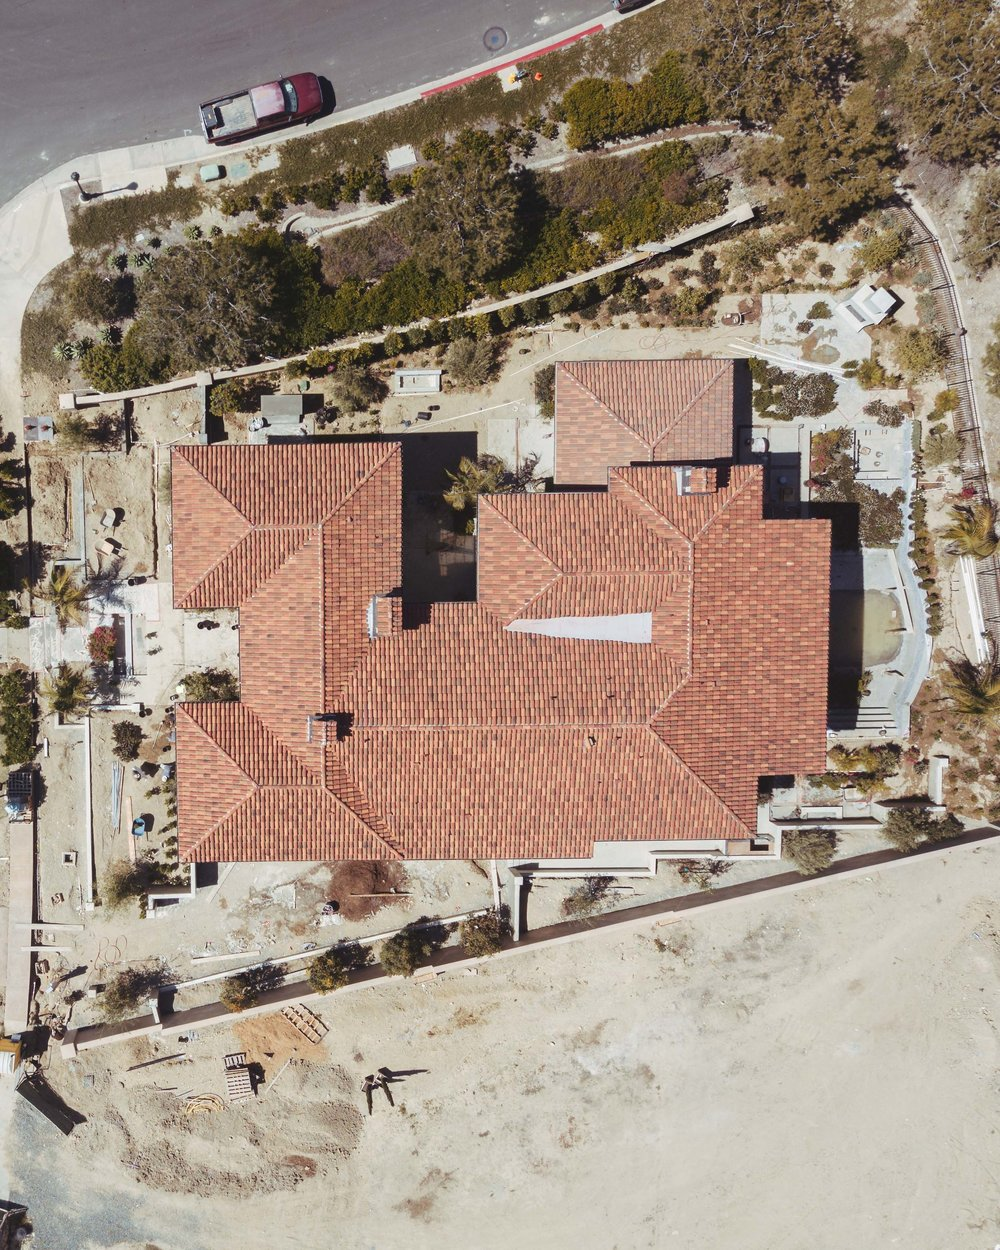 Crystal Cove Northern Italian Under Construction Aerial By Oatman Architects